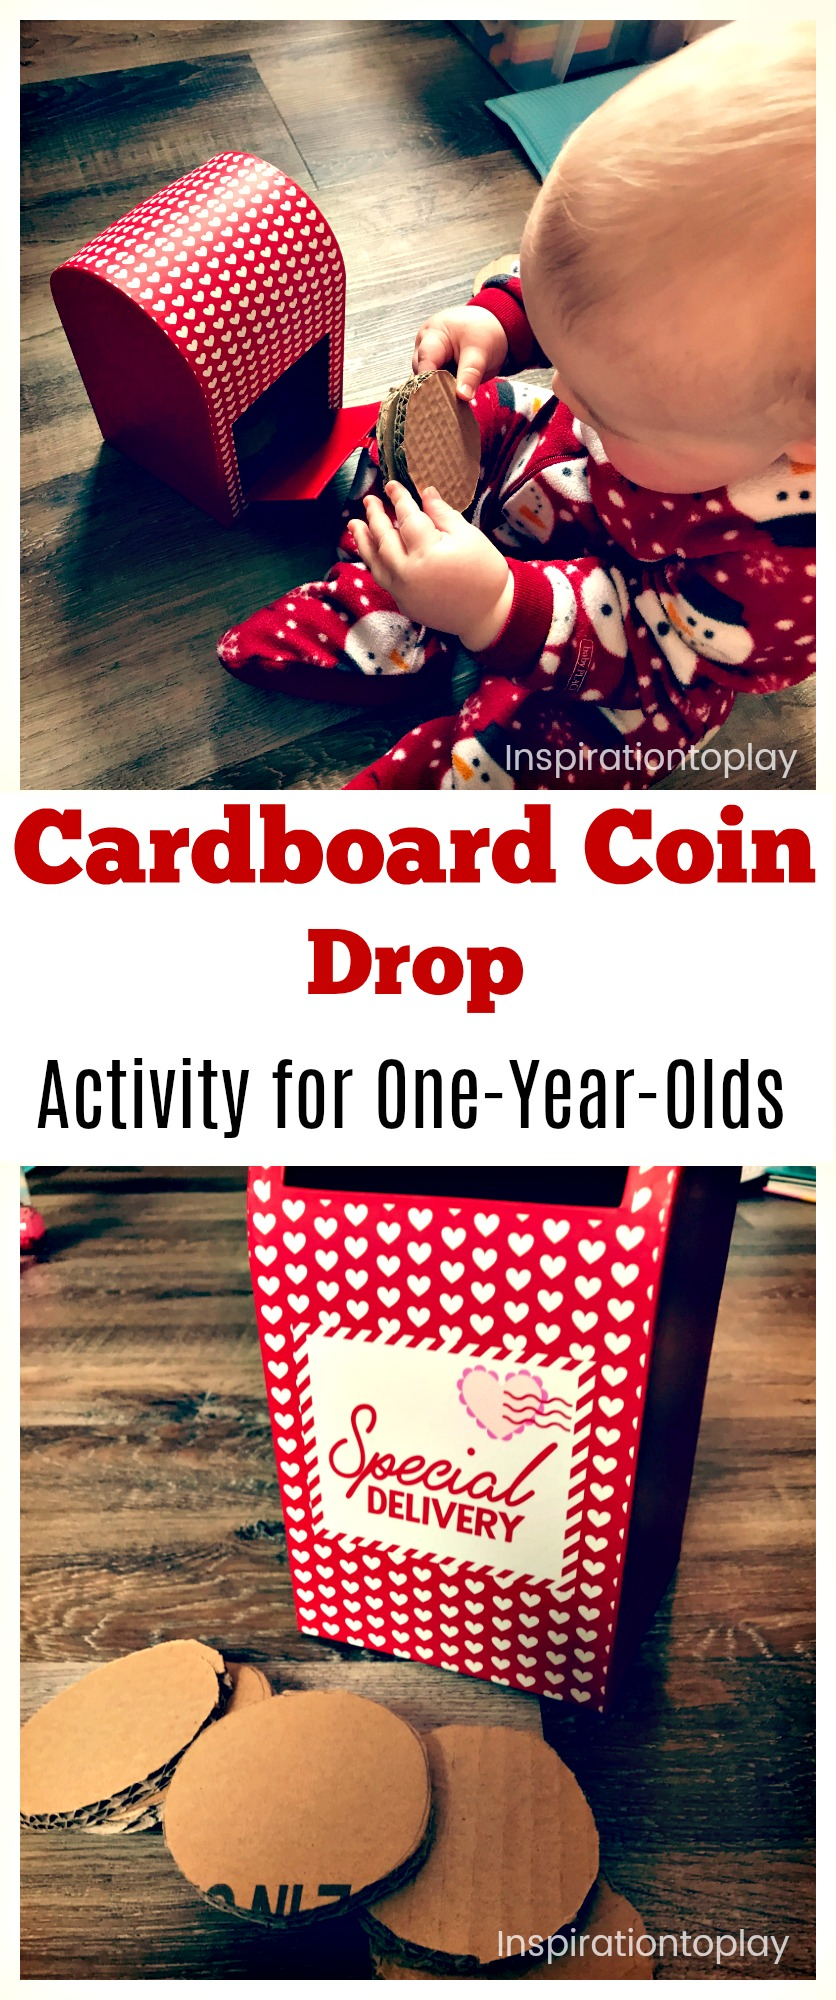 Cardboard coin drop activity for one year olds